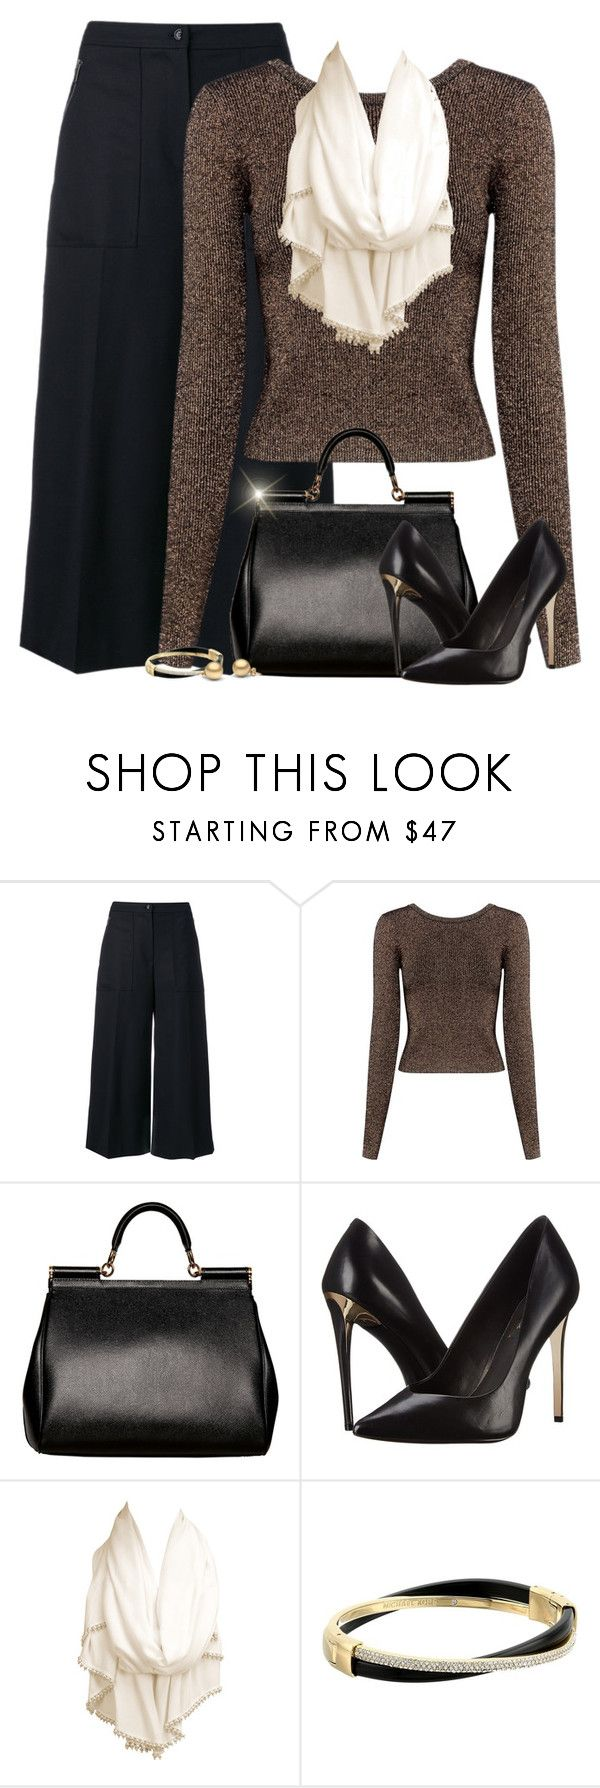 """""""Keeping it simple!"""" by houston555-396 ❤ liked on Polyvore featuring Kenzo, A.L.C., Dolce&Gabbana, Rachel Zoe, Coast and Michael Kors"""